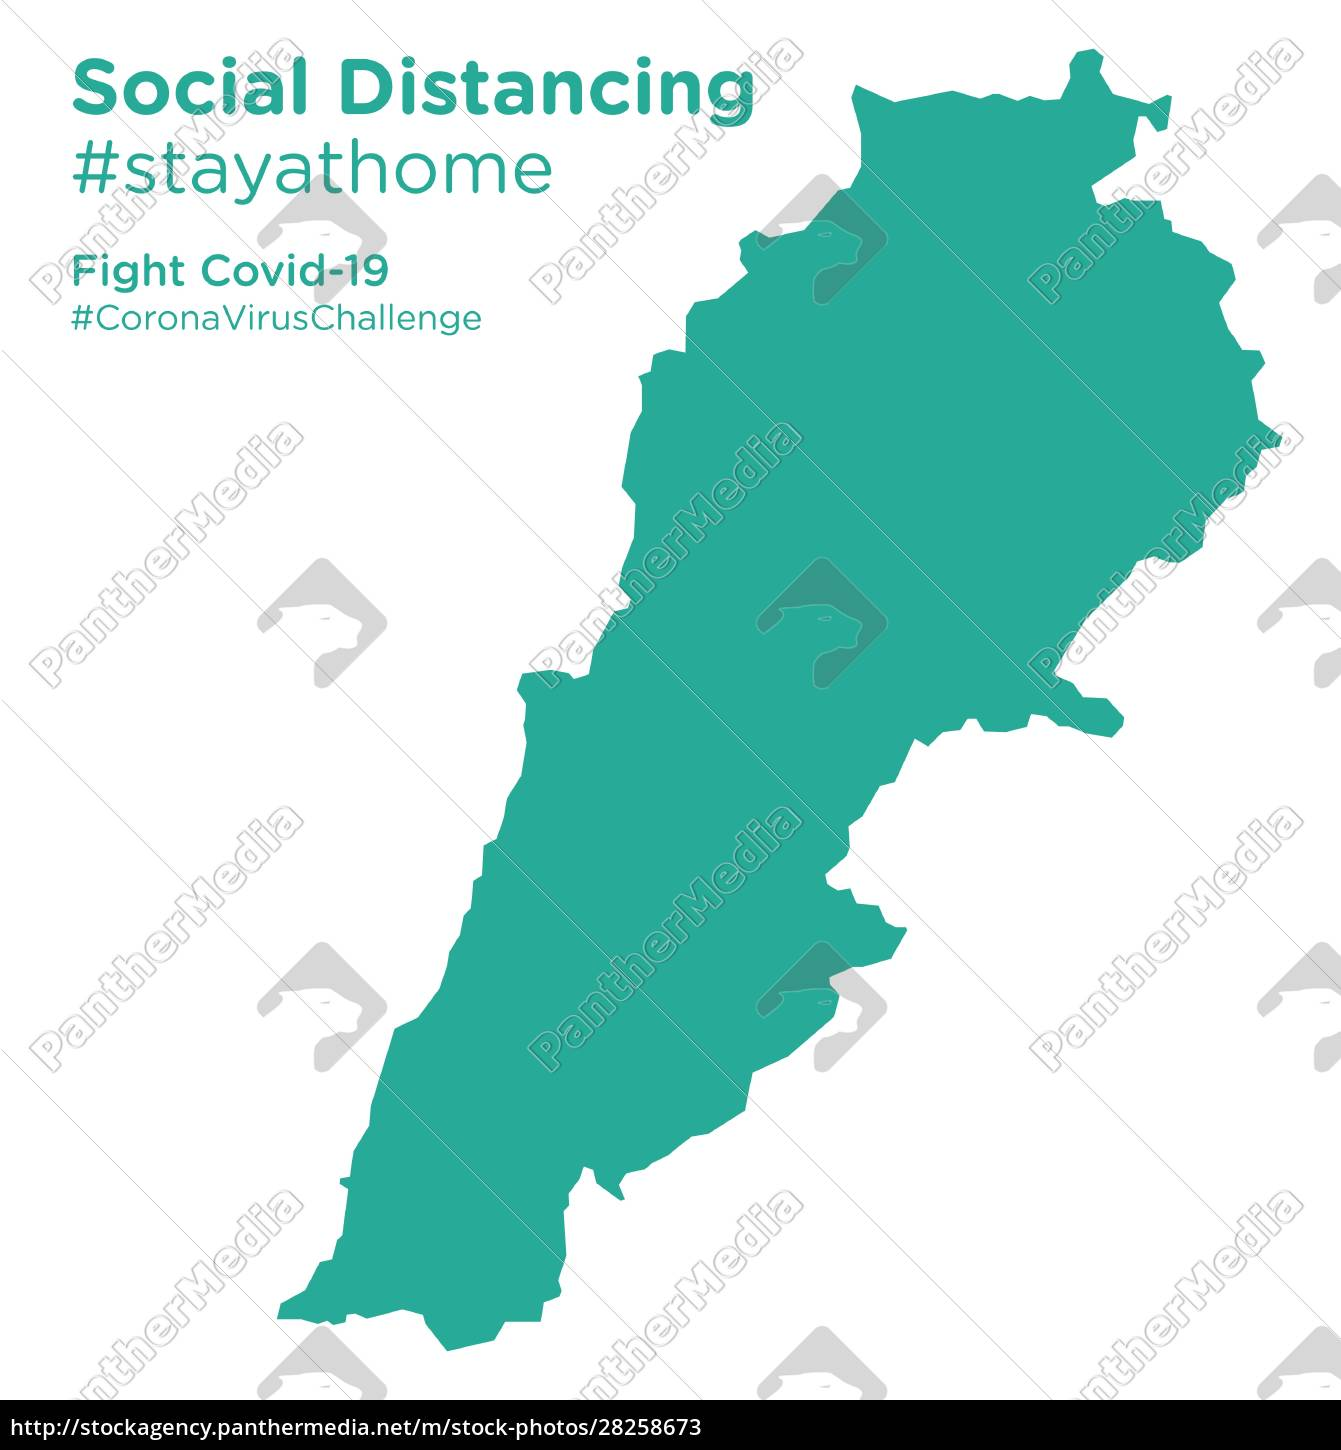 lebanon, map, with, social, distancing, stayathome - 28258673